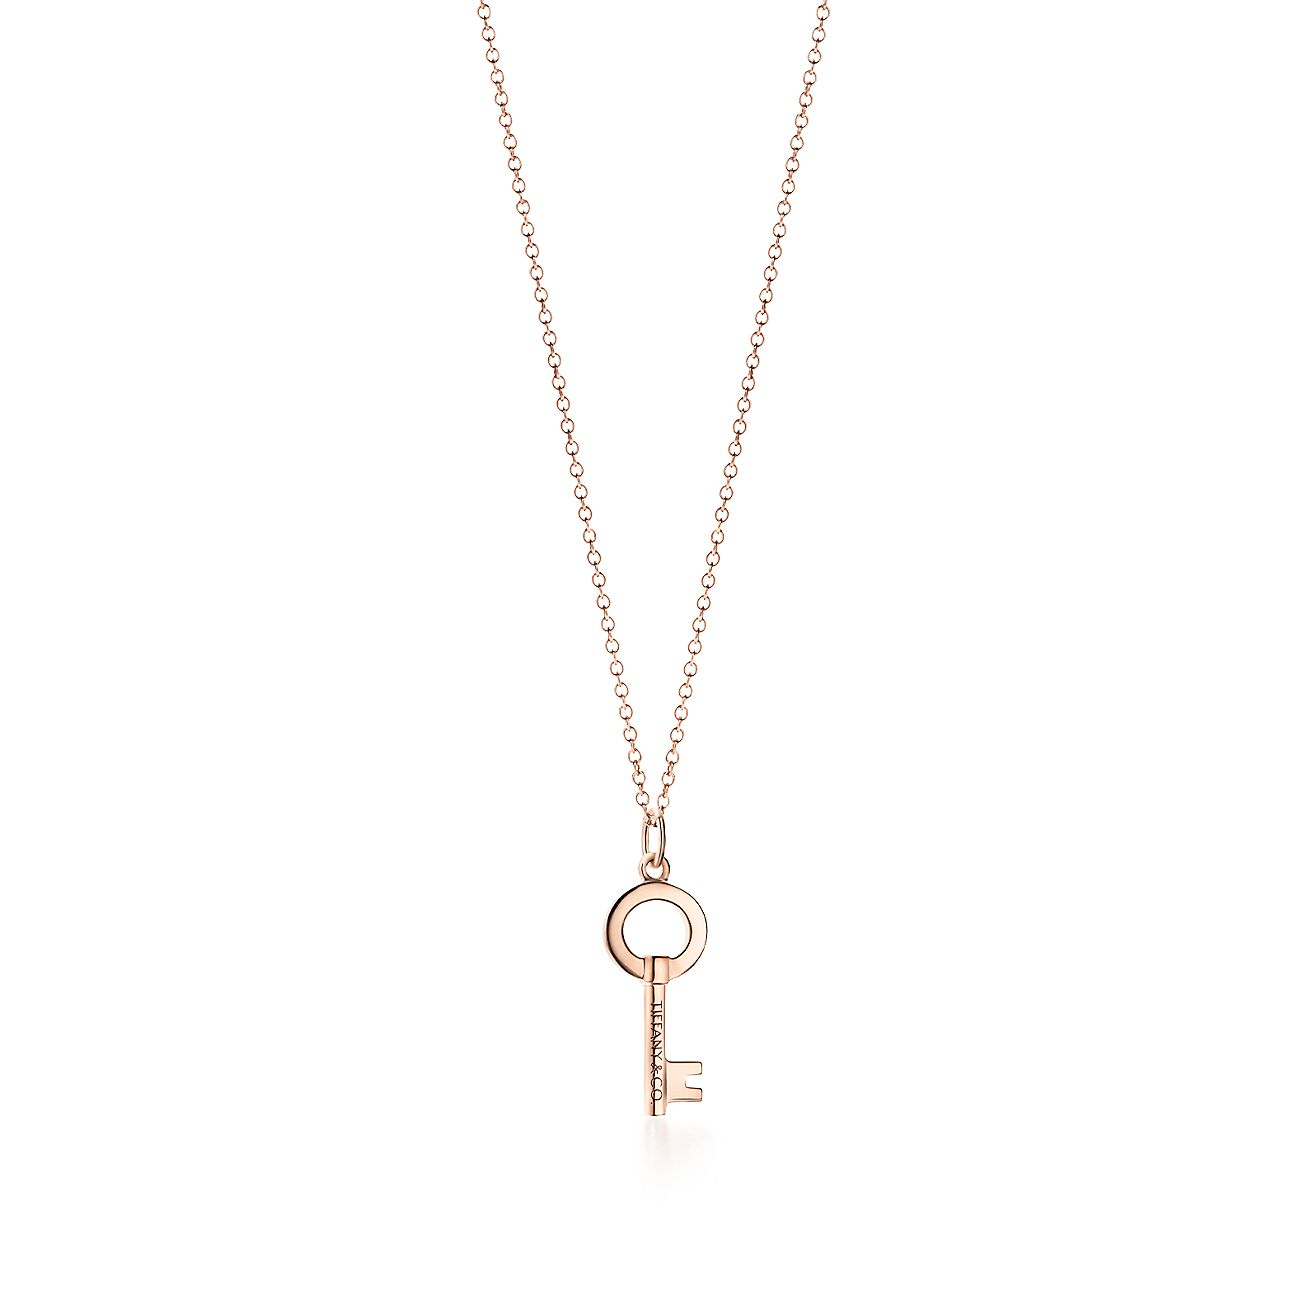 Tiffany Keys Modern Keys Open Round Key Pendant In 18k Rose Gold Mini Tiffany Co